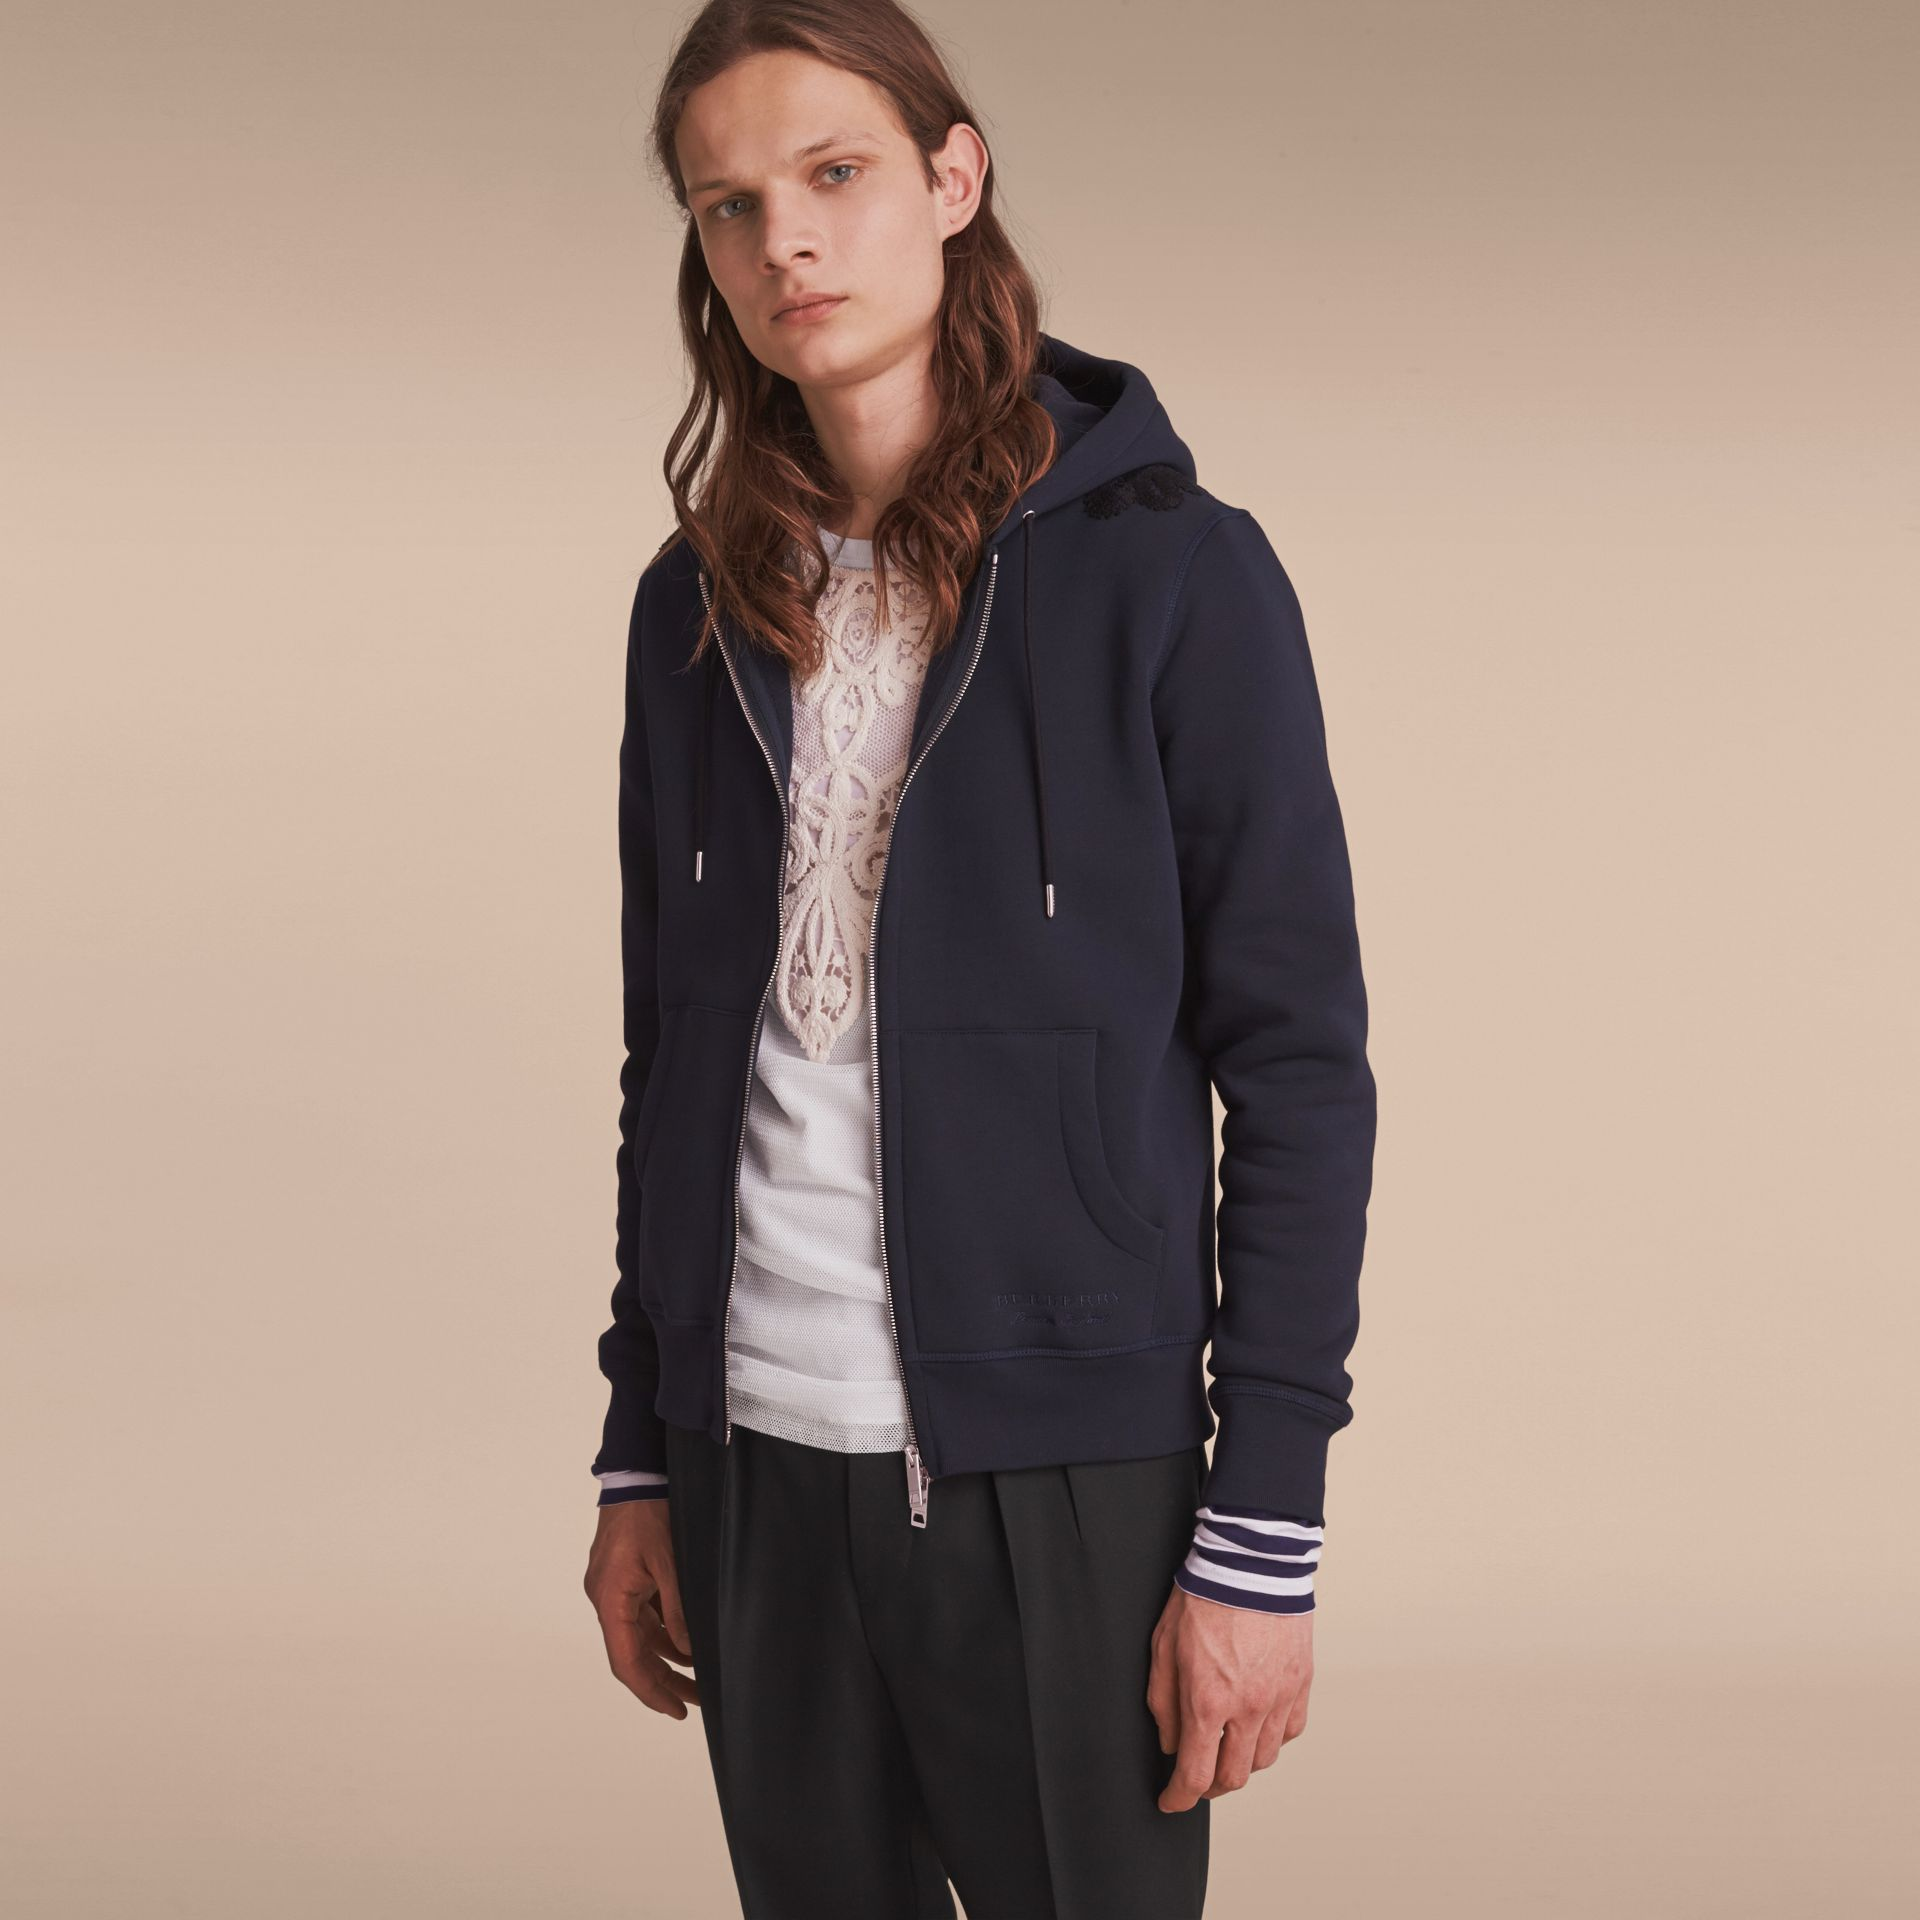 Lace Appliqué Jersey Hooded Top in Dark Navy - Men | Burberry Singapore - gallery image 6